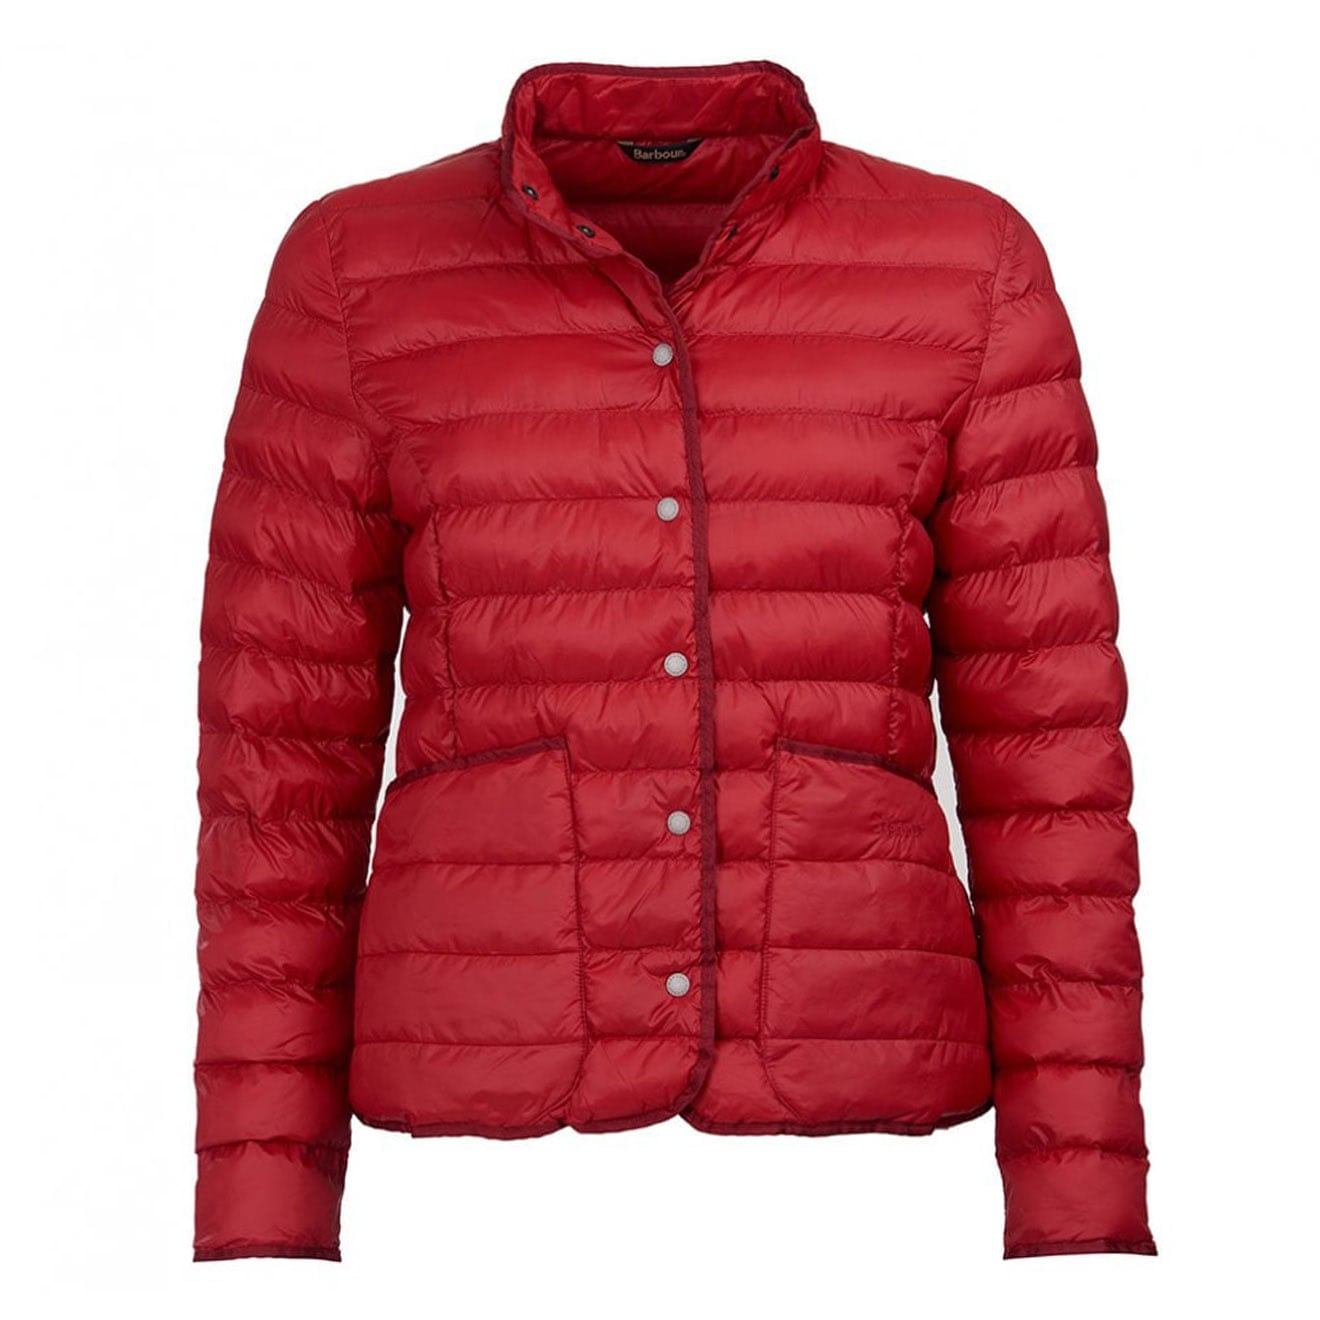 Barbour Womens Hollybush Quilted Jacket Chilli Red The